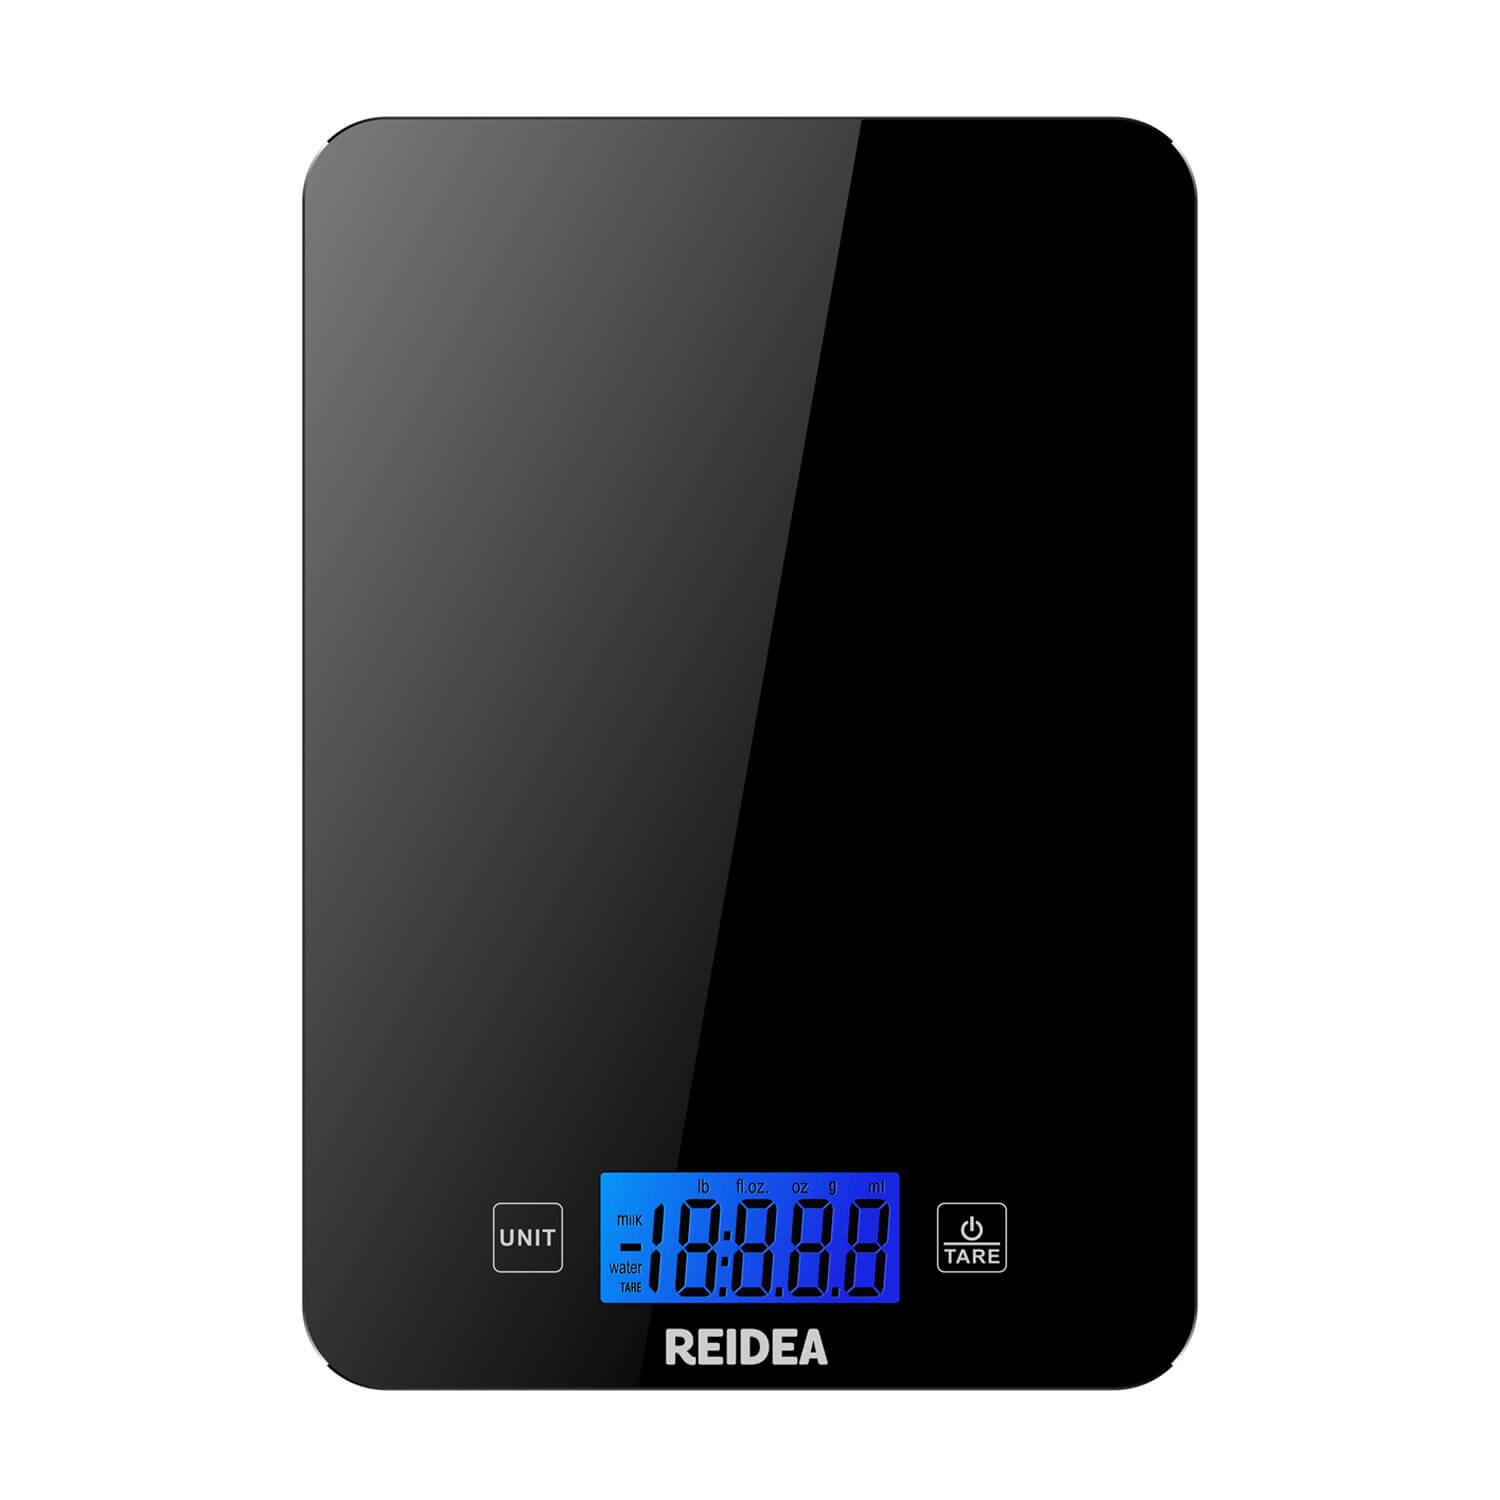 Manual for Digital Luggage Scale